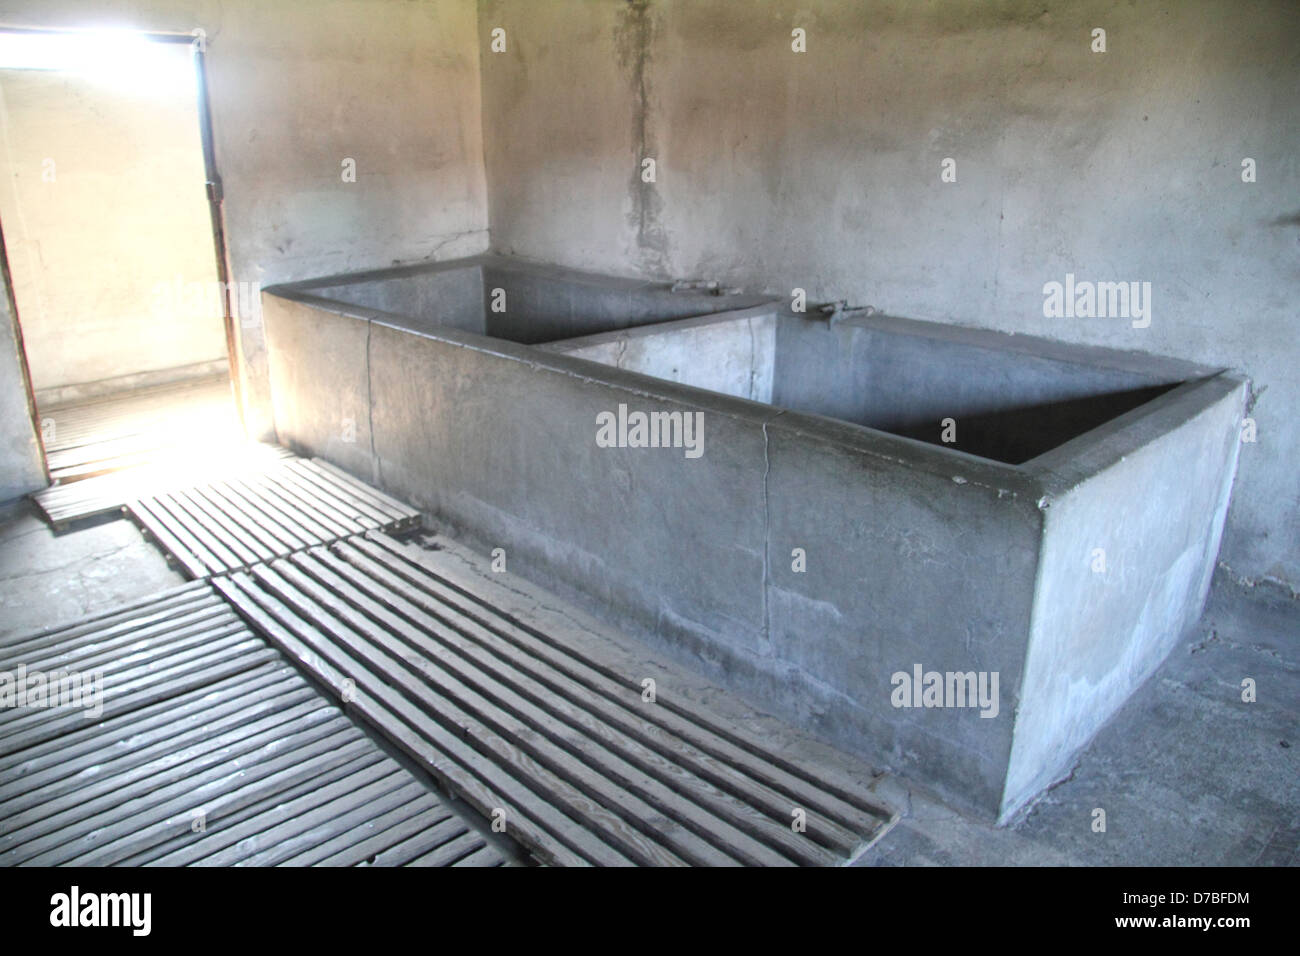 Concrete bath tubs at \'Bath And Disinfection\' Barrack 41 in Majdanek ...